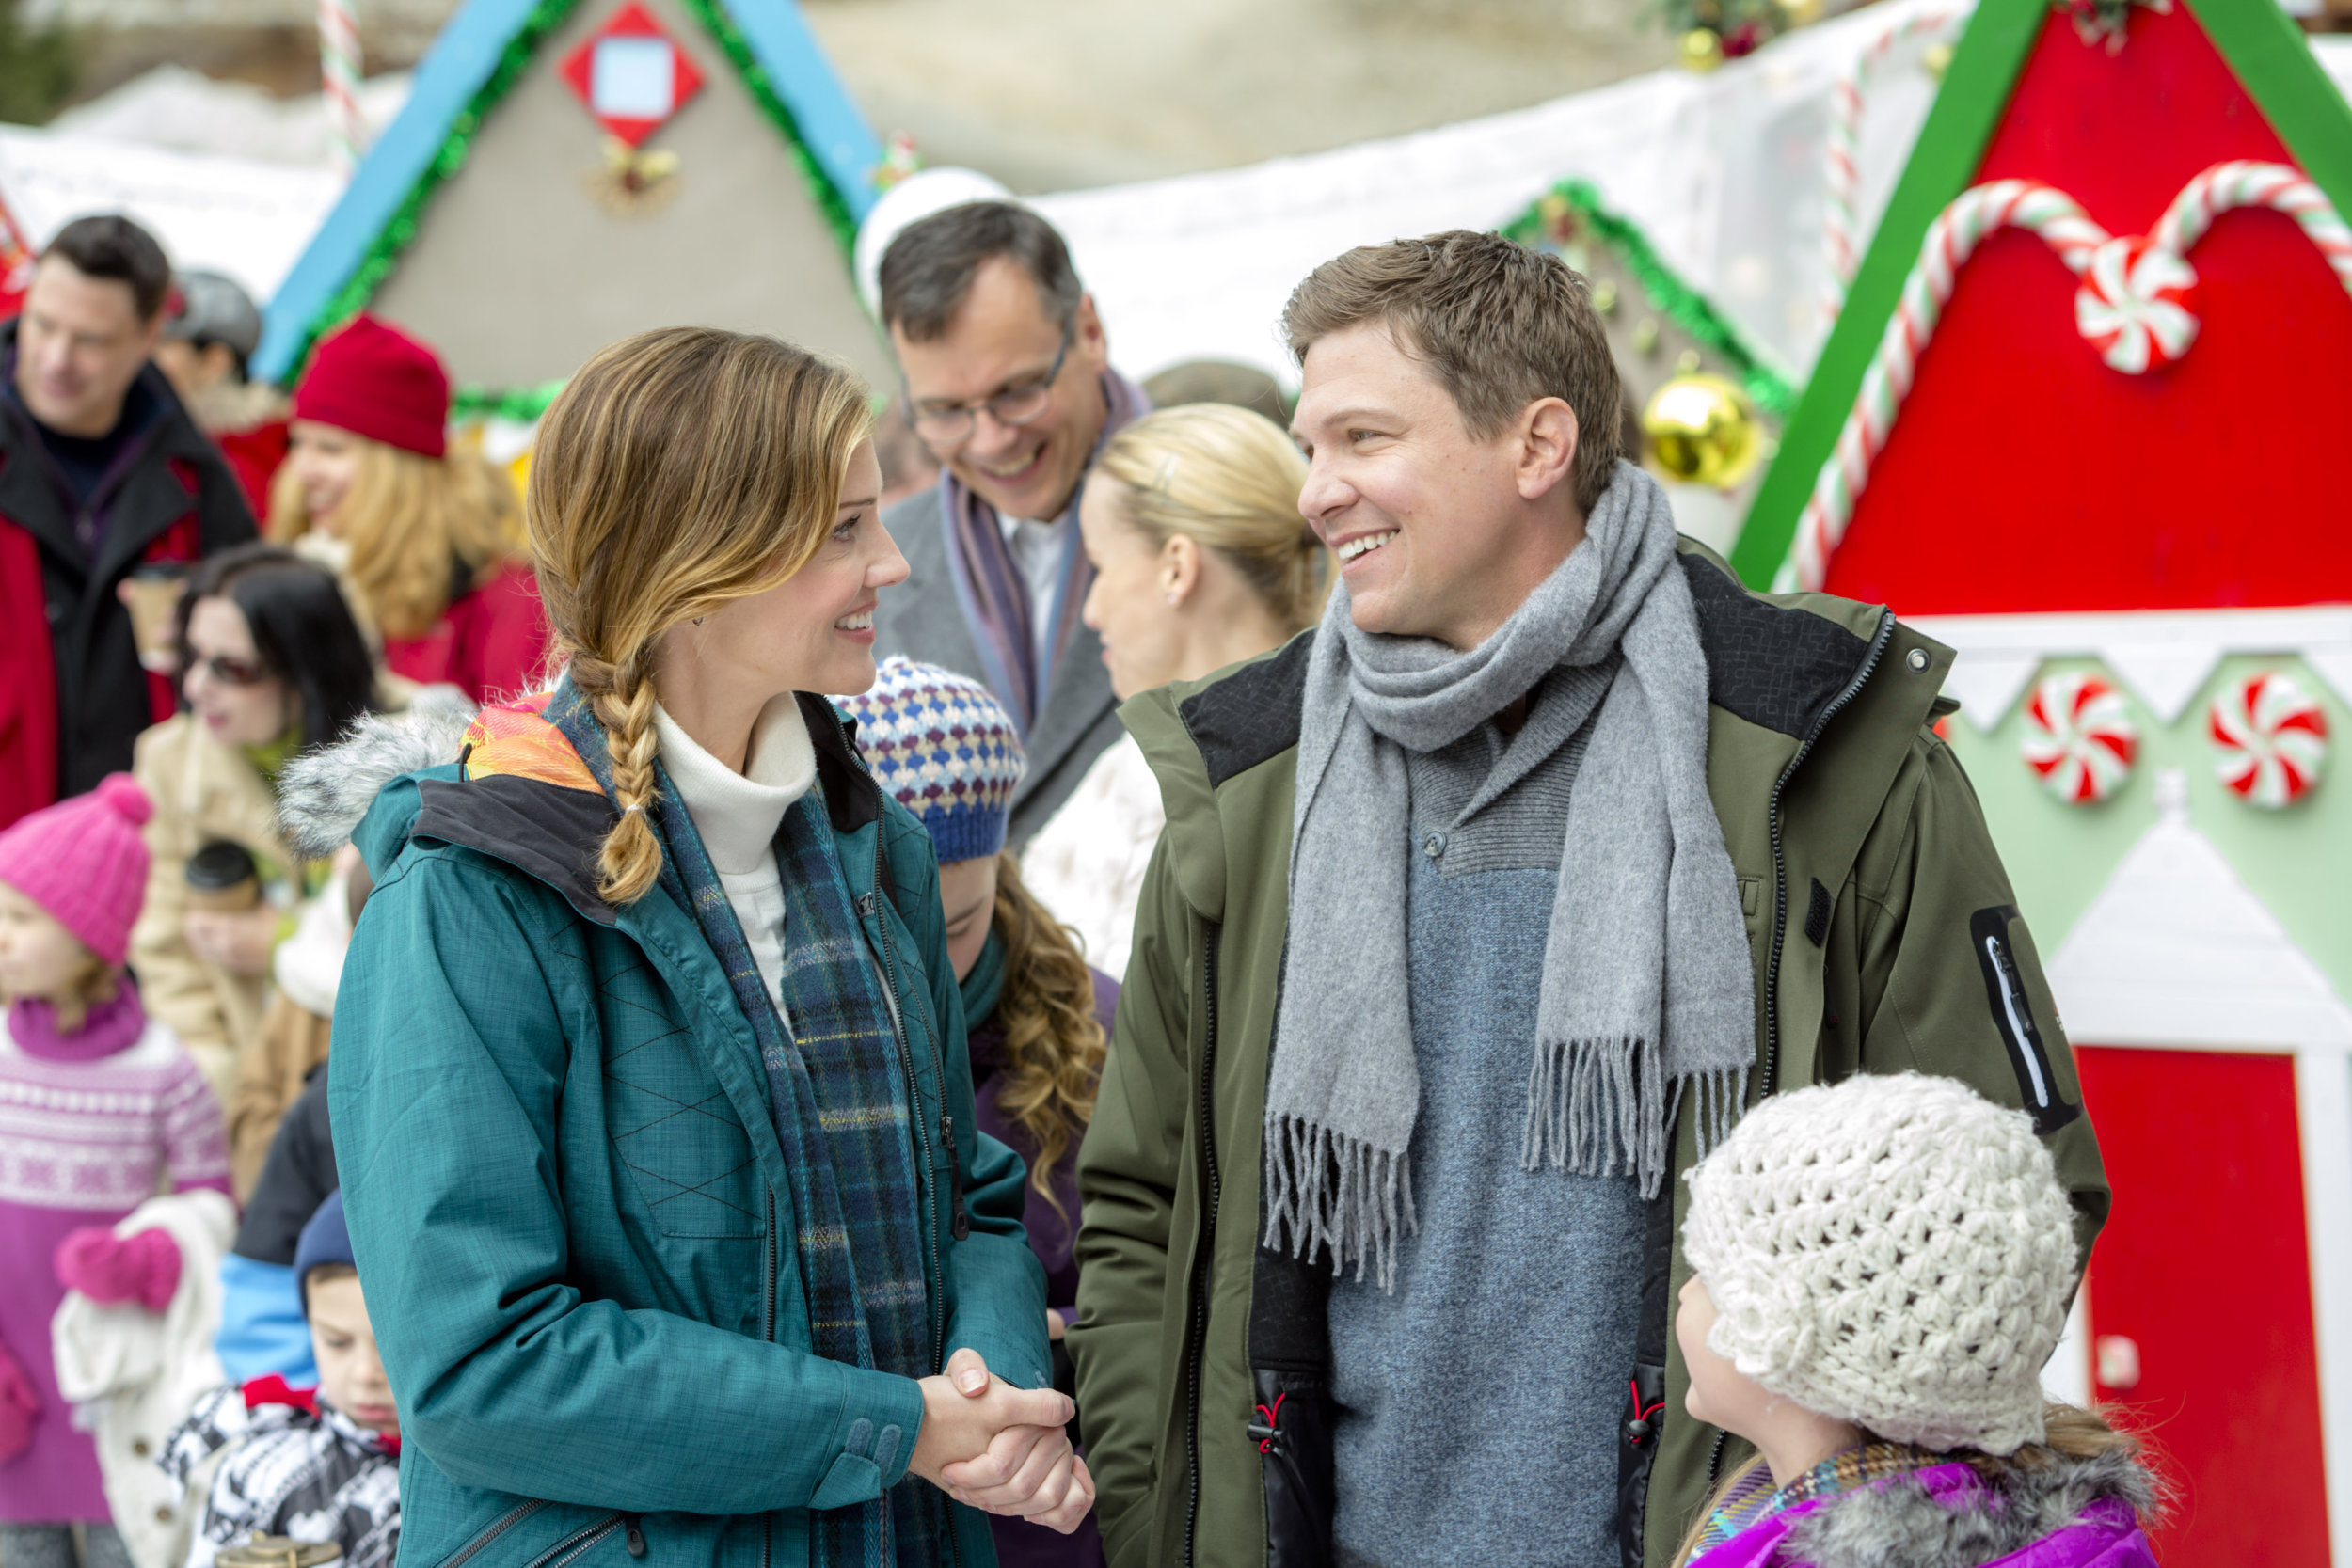 Cast Operation Christmas Hallmark Movies And Mysteries